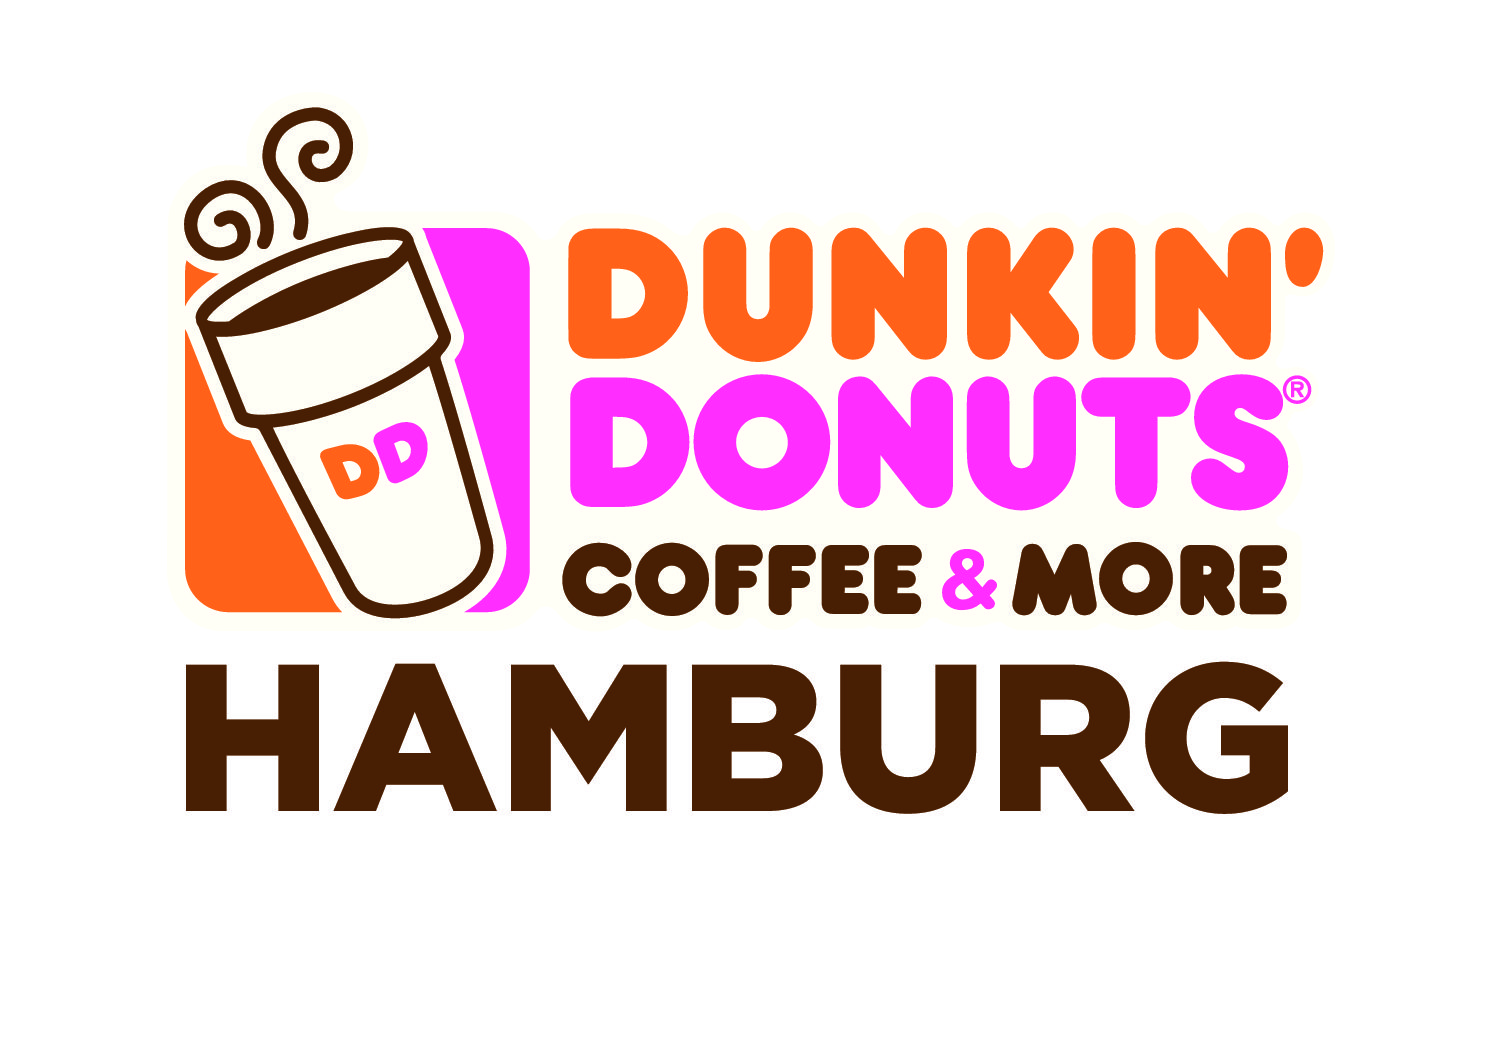 euer s er start ins wochenende mit dem dunkin 39 donuts hamburg store im dammtor bahnhof sichert. Black Bedroom Furniture Sets. Home Design Ideas